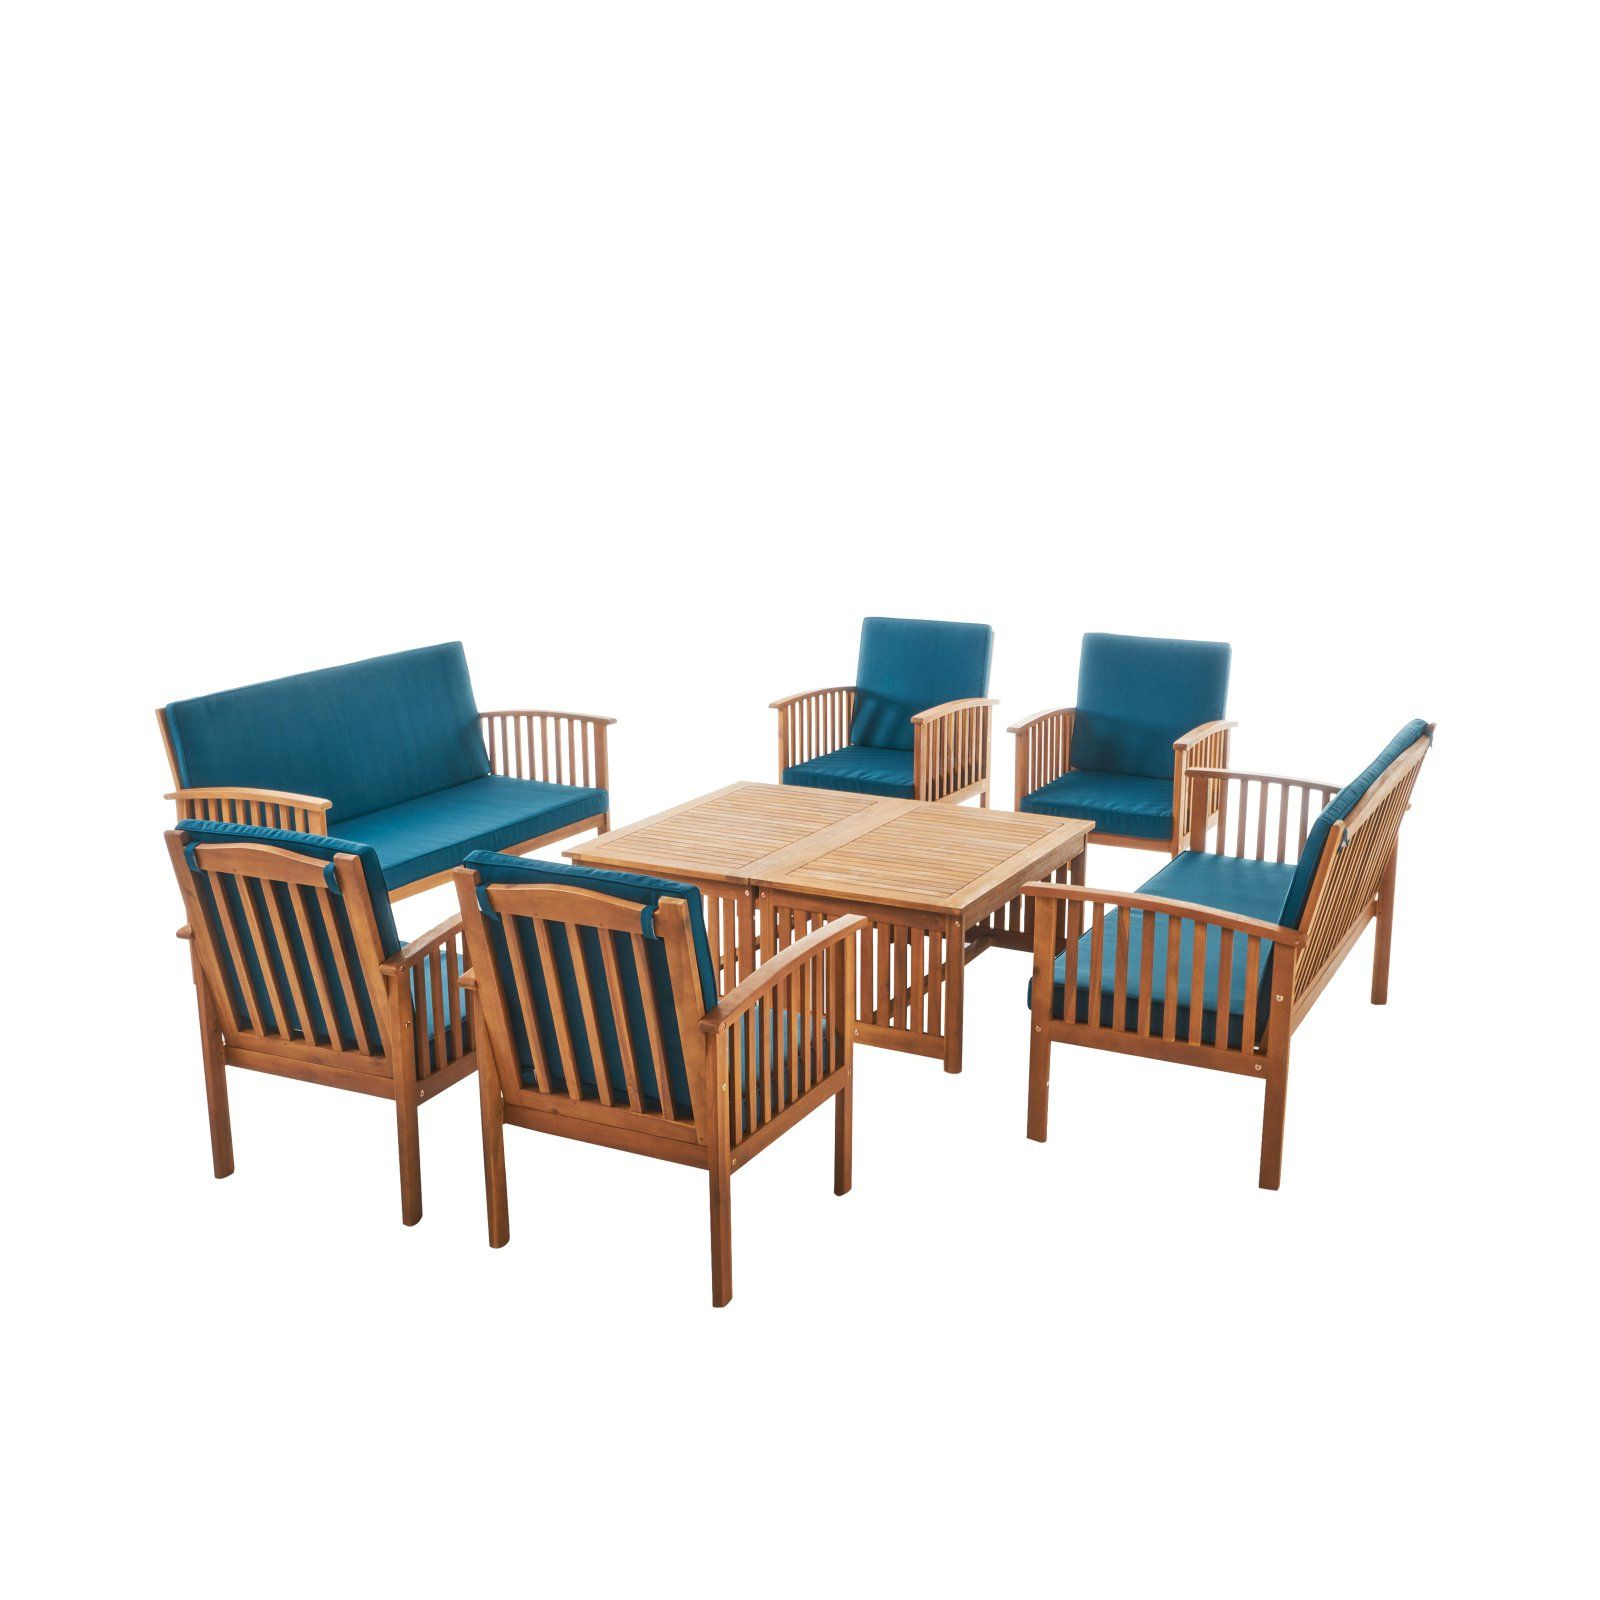 Enjoyable Outdoor Best Selling Home Carolina Acacia Wood 8 Piece Patio Caraccident5 Cool Chair Designs And Ideas Caraccident5Info